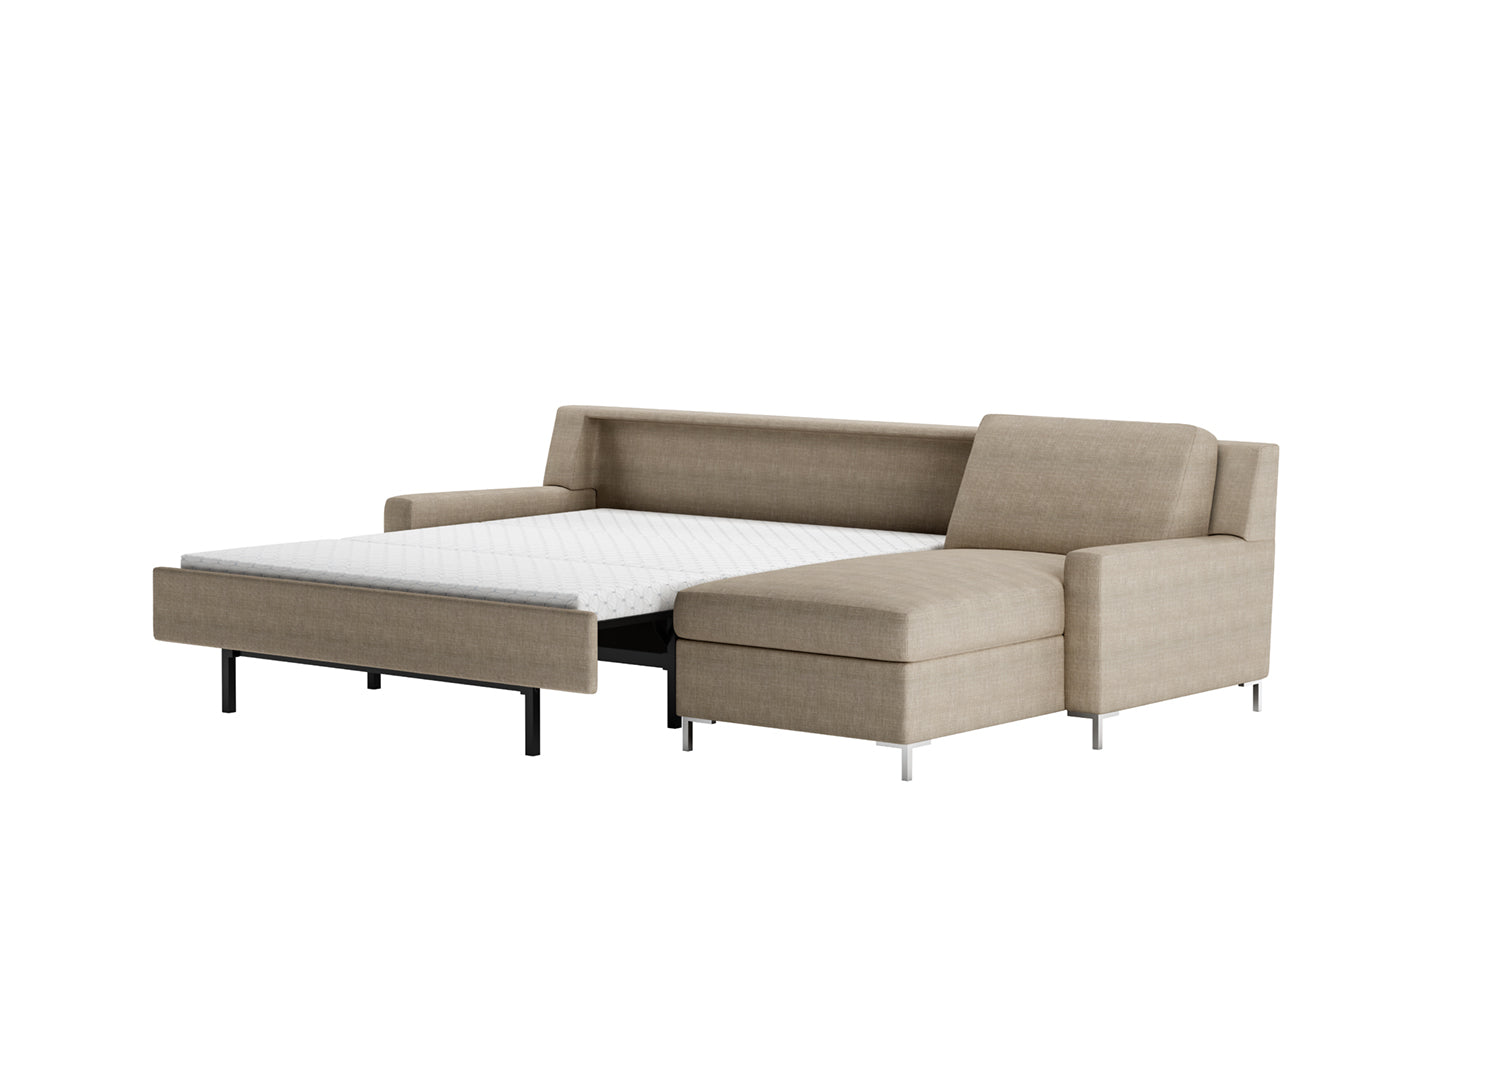 Bryson Comfort Sleeper Sofa By American Leather Five